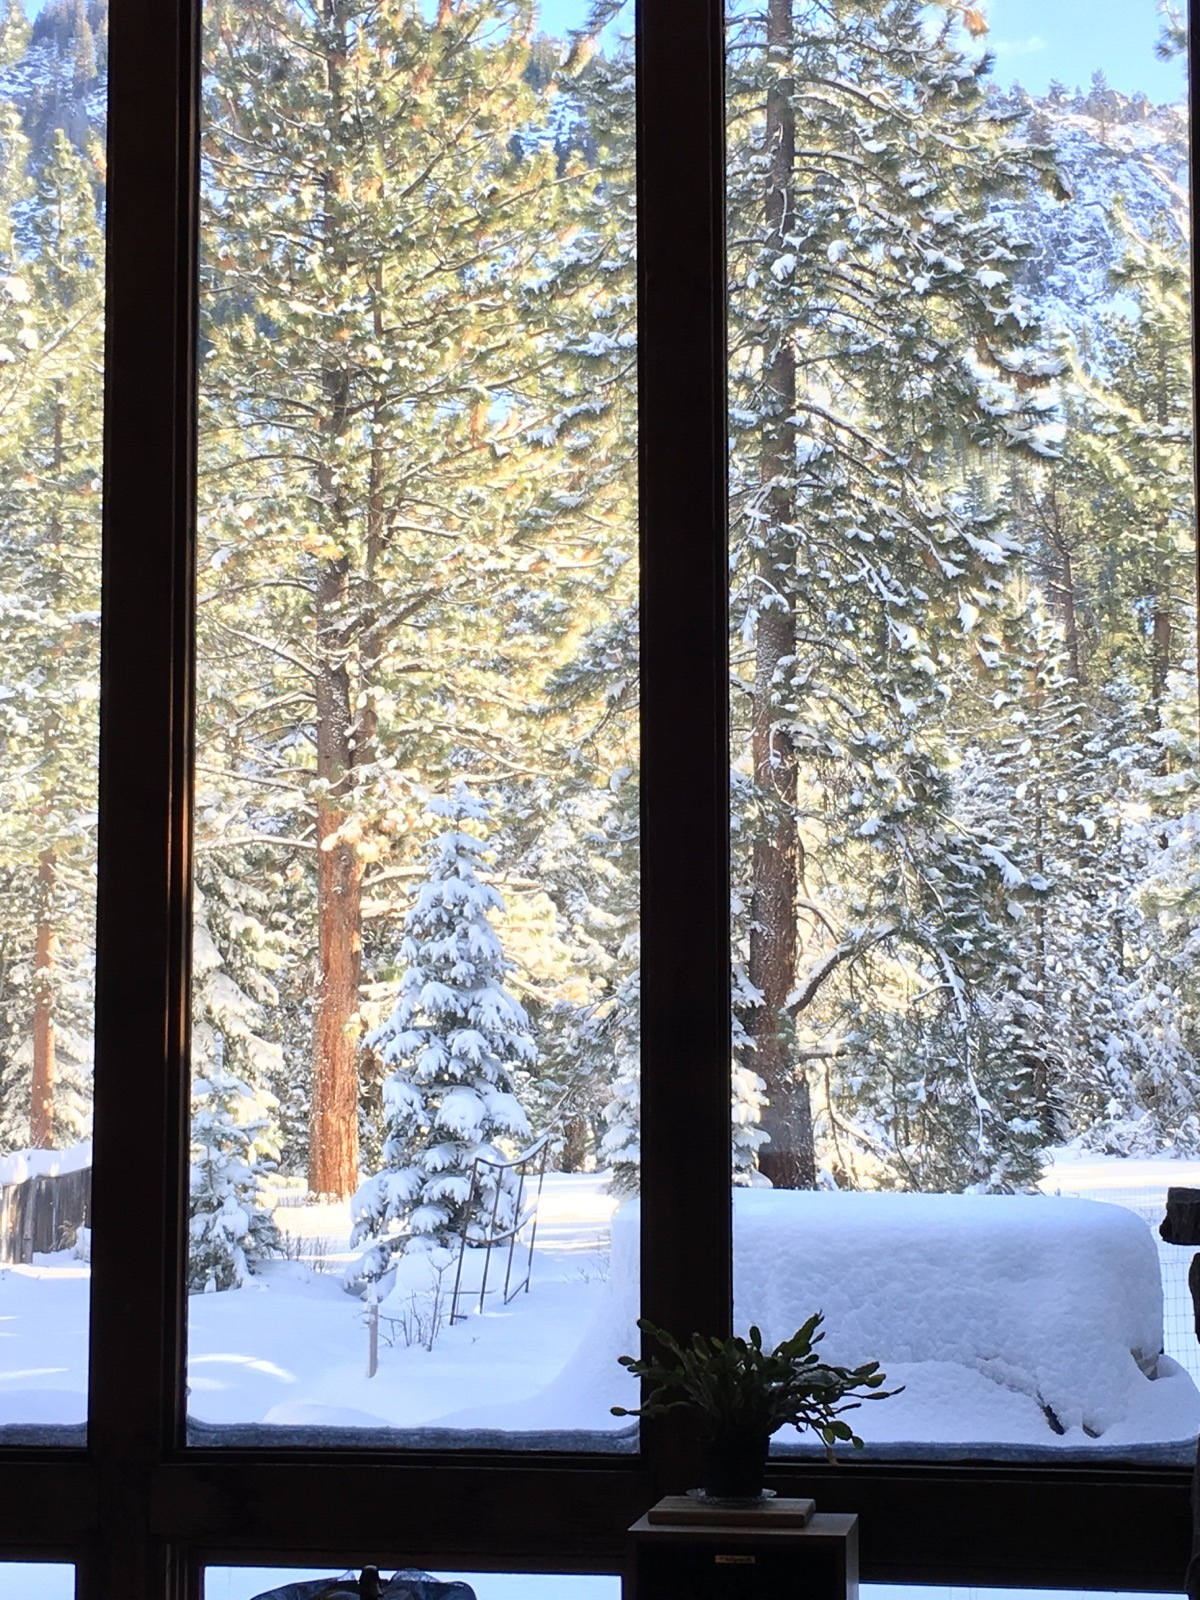 South Lake Tahoe by Laurie Puglia